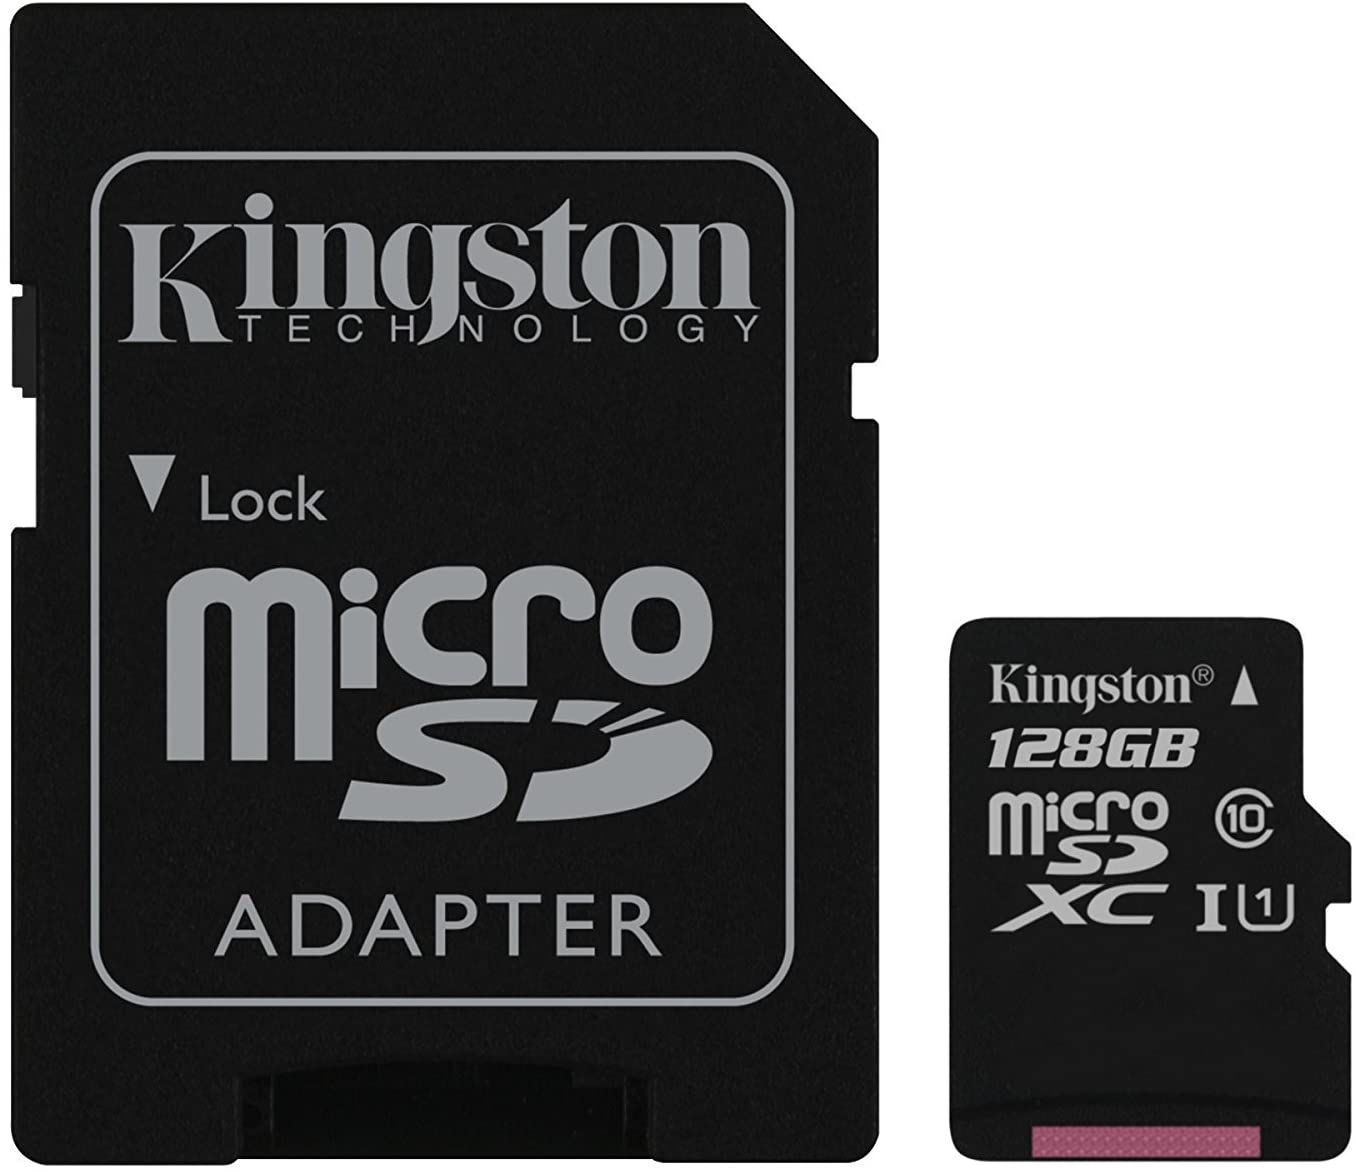 Kingston Digital 128GB microSDXC Class 10 UHS-I 45MB/s Read Card with SD Adapter (SDC10G2/128GB)